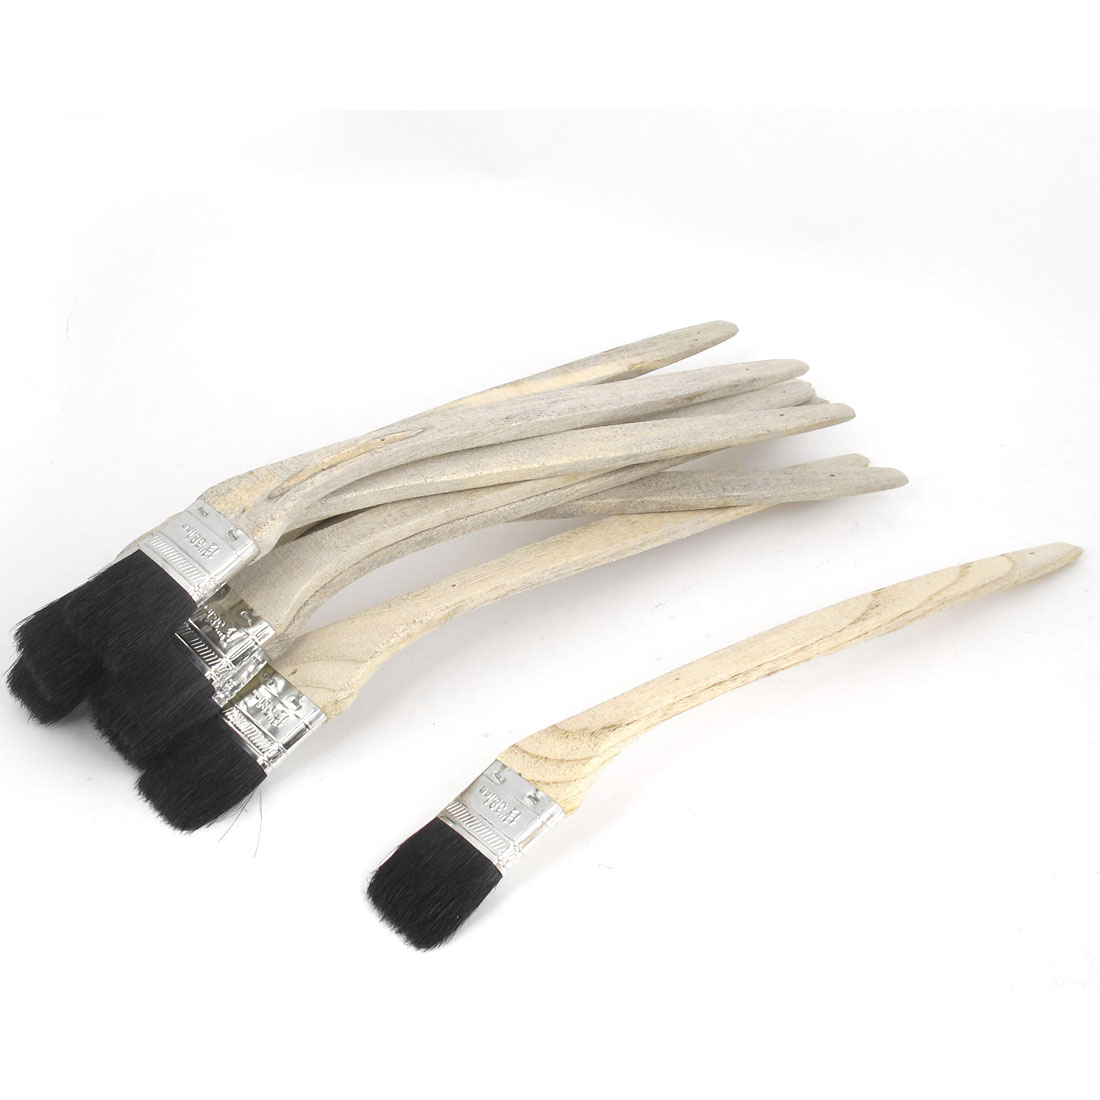 "10pcs 1.5"" Width Bent Wooden Grip Paint Bristle Brush DIY Wall Decorating Painting Tool"